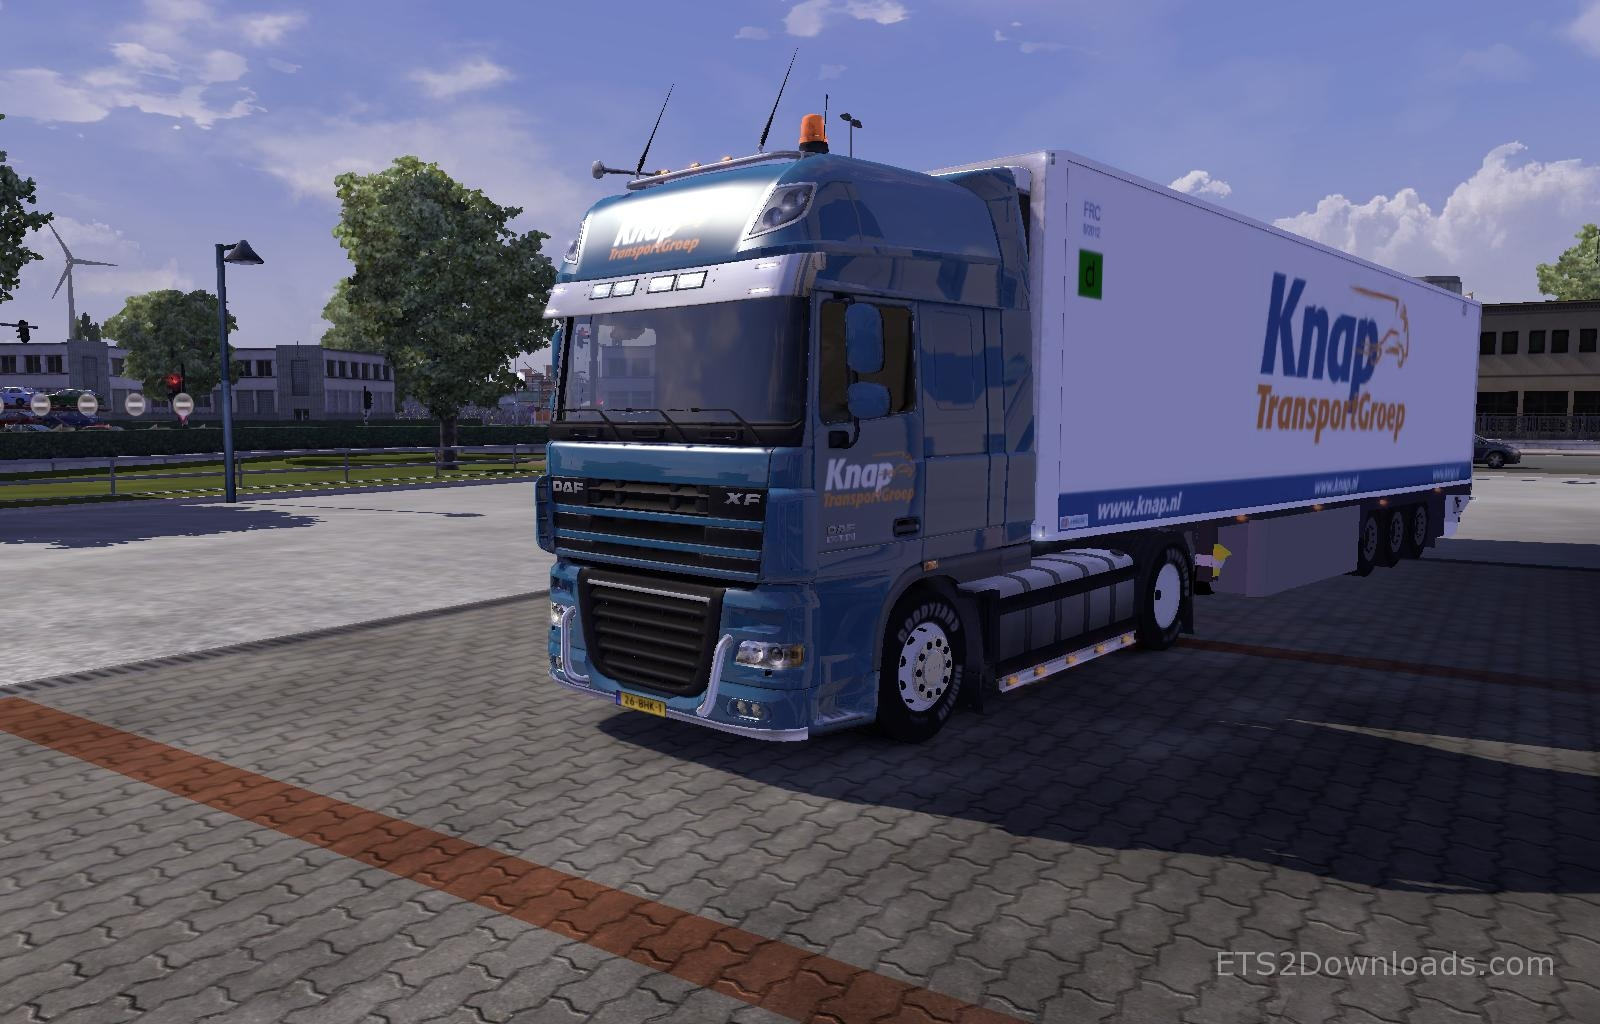 knap-transportgroep-skin-pack-for-daf